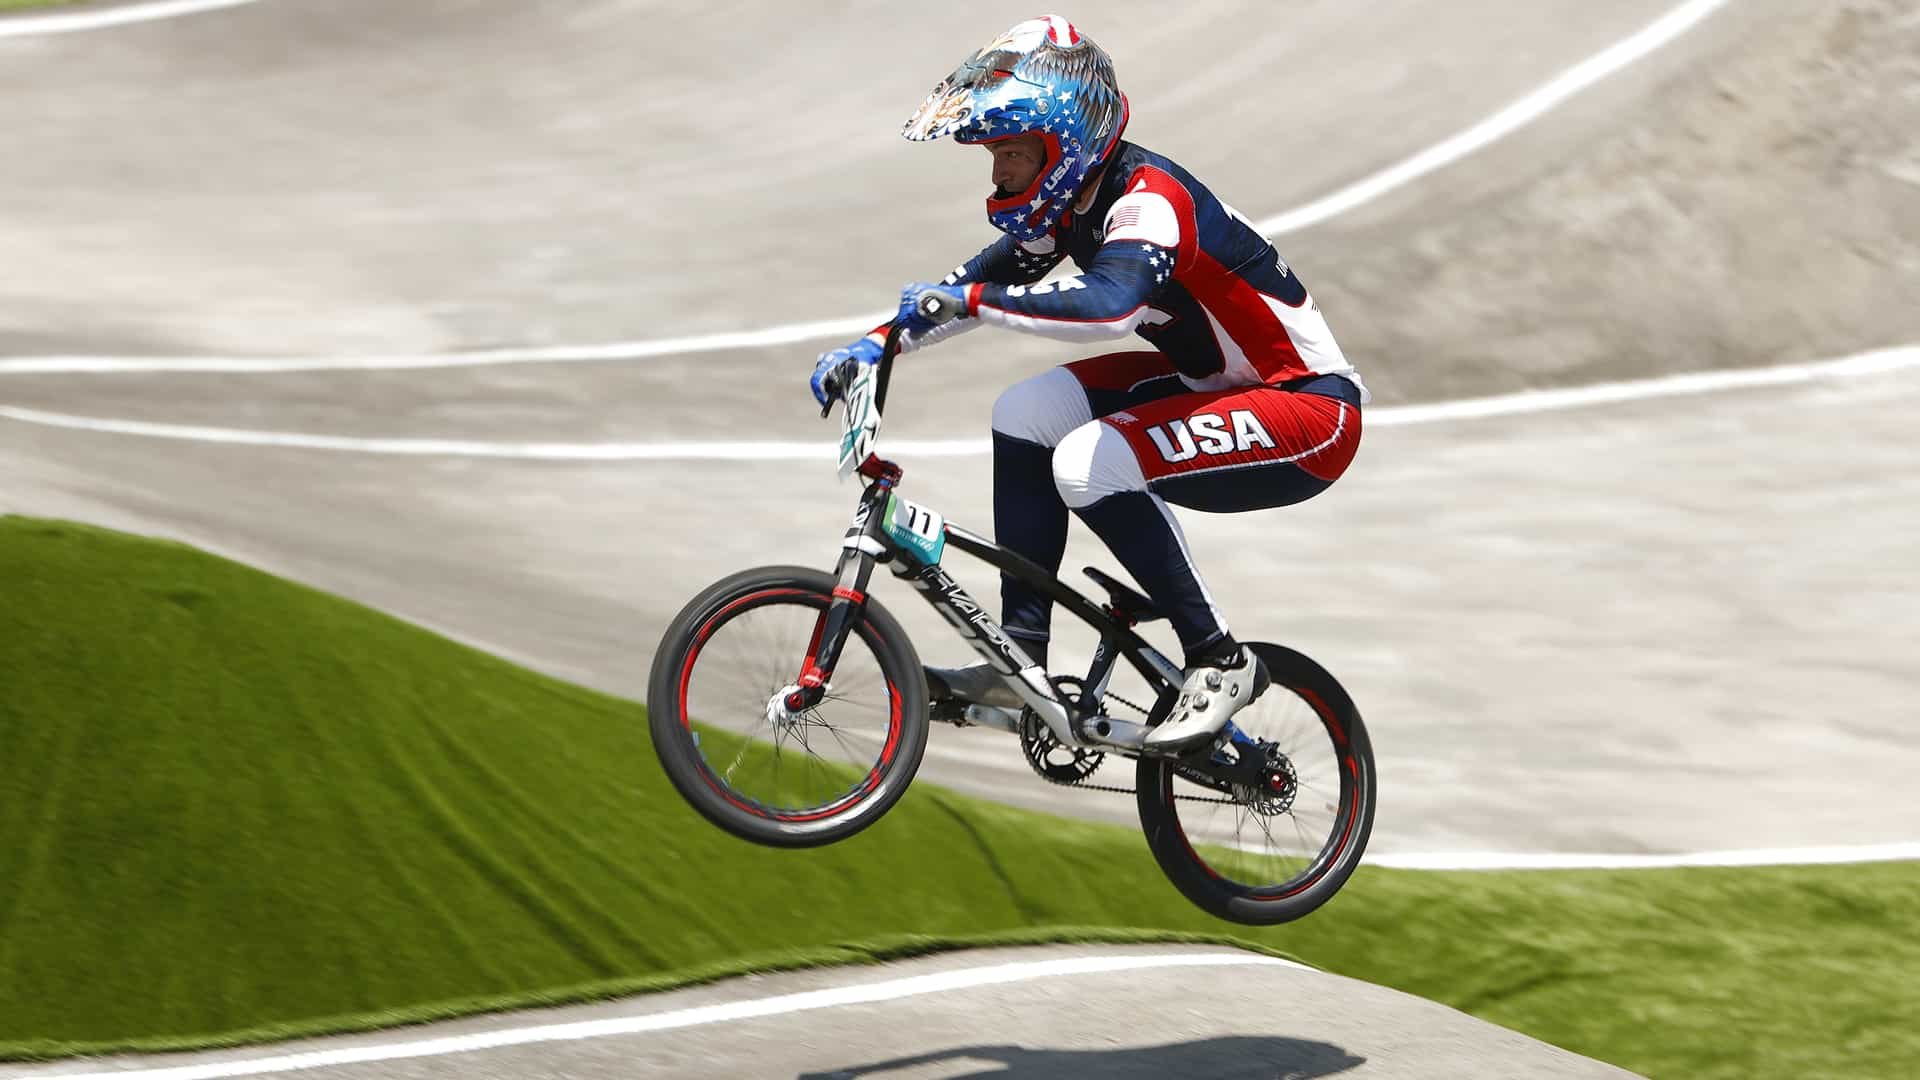 Image for USA BMX champion Connor Fields suffers heavy crash, exits on stretcher